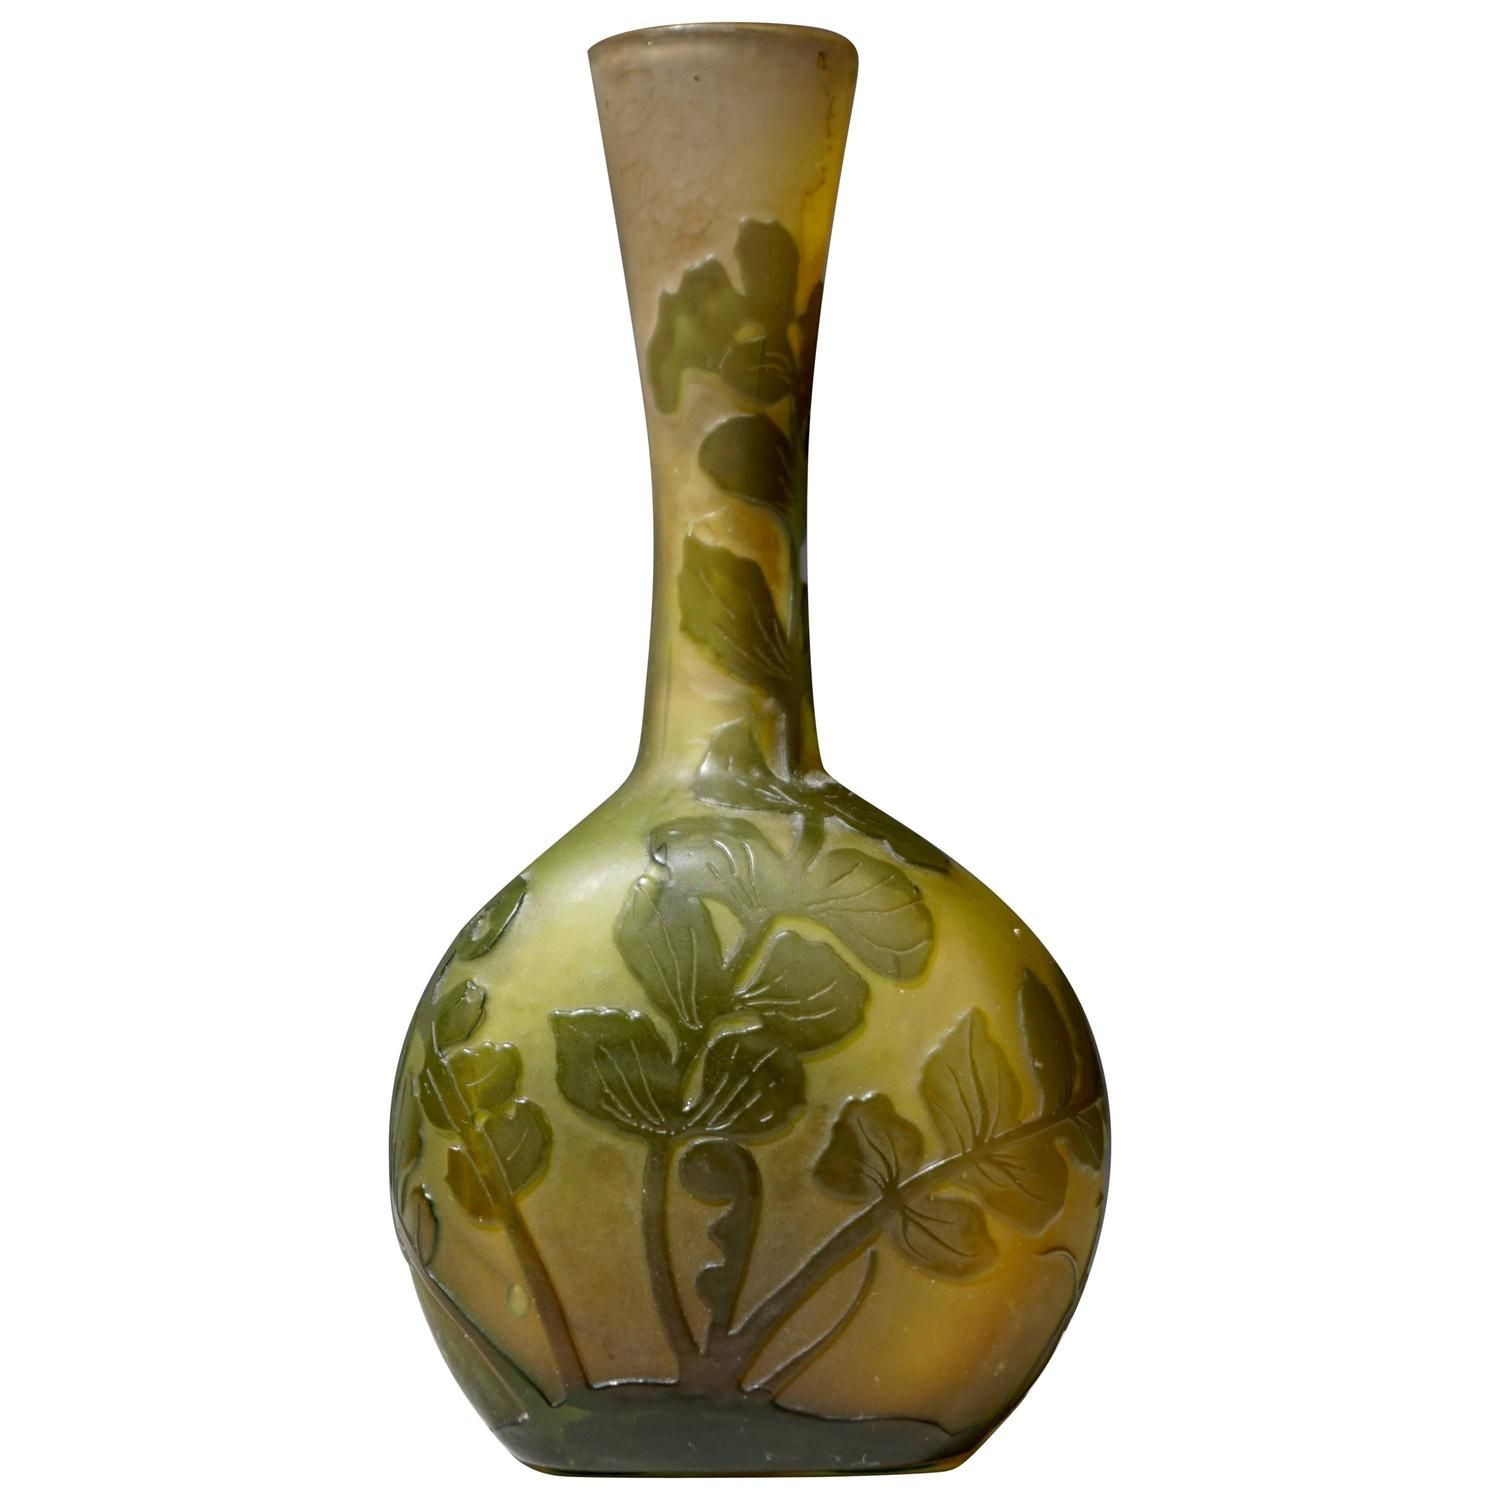 galle vase for sale of emile galla french art nouveau cameo glass vase french art with regard to emile galla french art nouveau cameo glass vase 1stdibs com